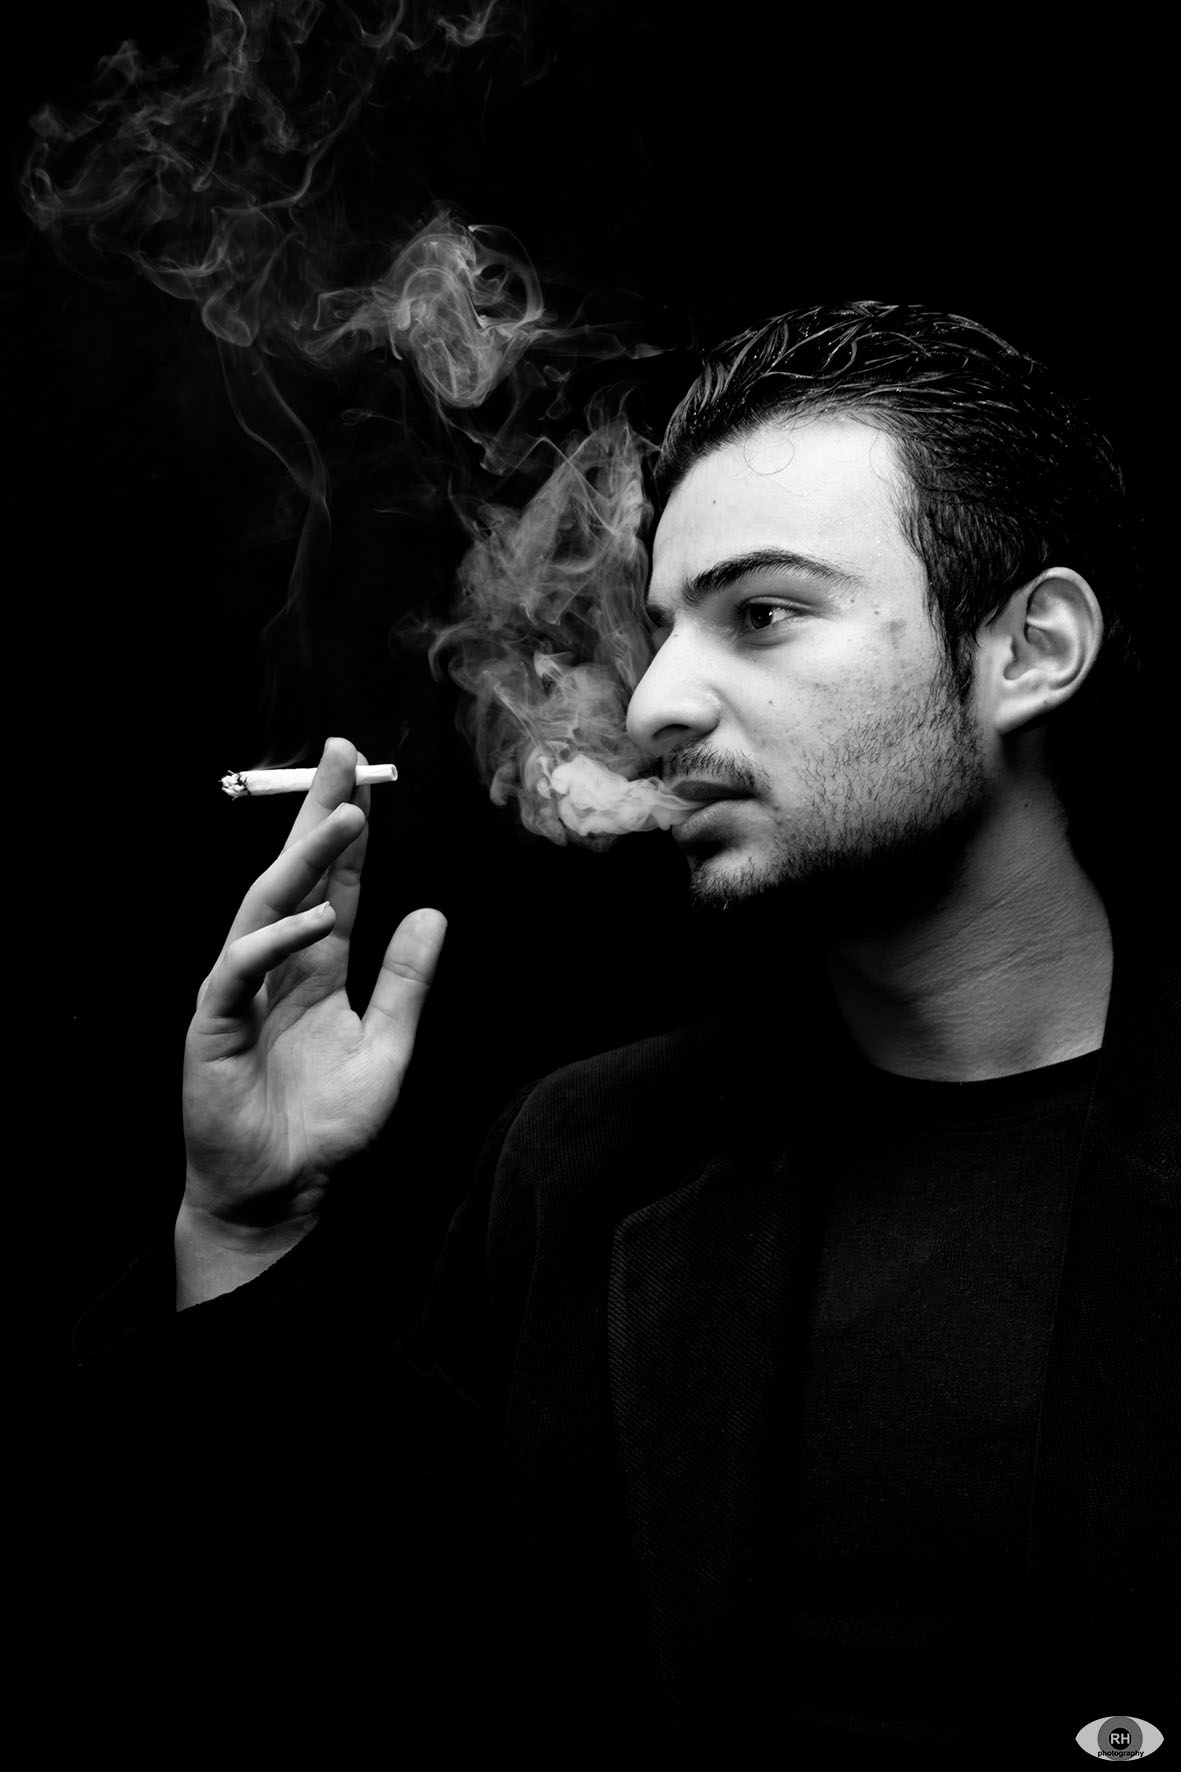 Smoking man by ⭐ rhphotography